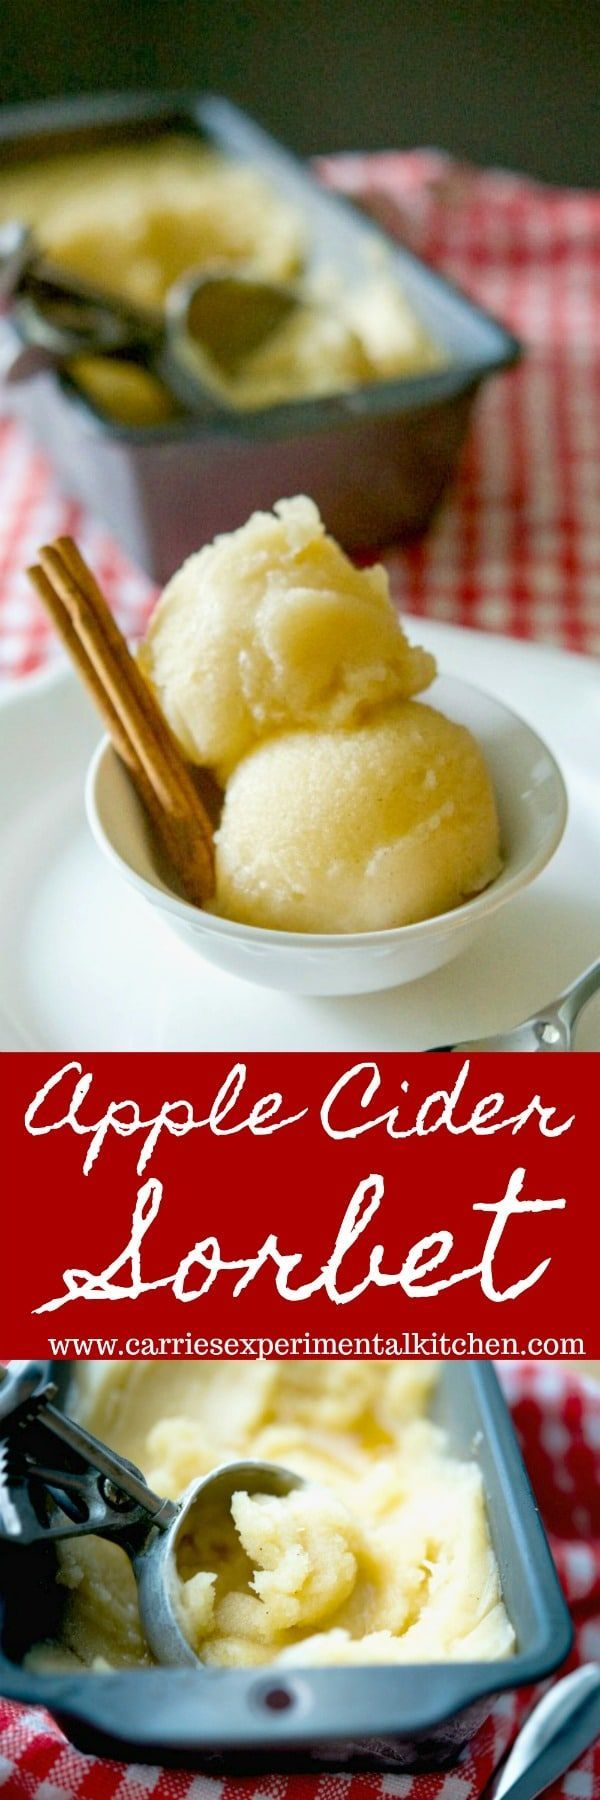 Turn your favorite Fall drink into a tasty, sweet dessert with this Apple Cider Sorbet. All you need are four ingredients and an ice cream maker.